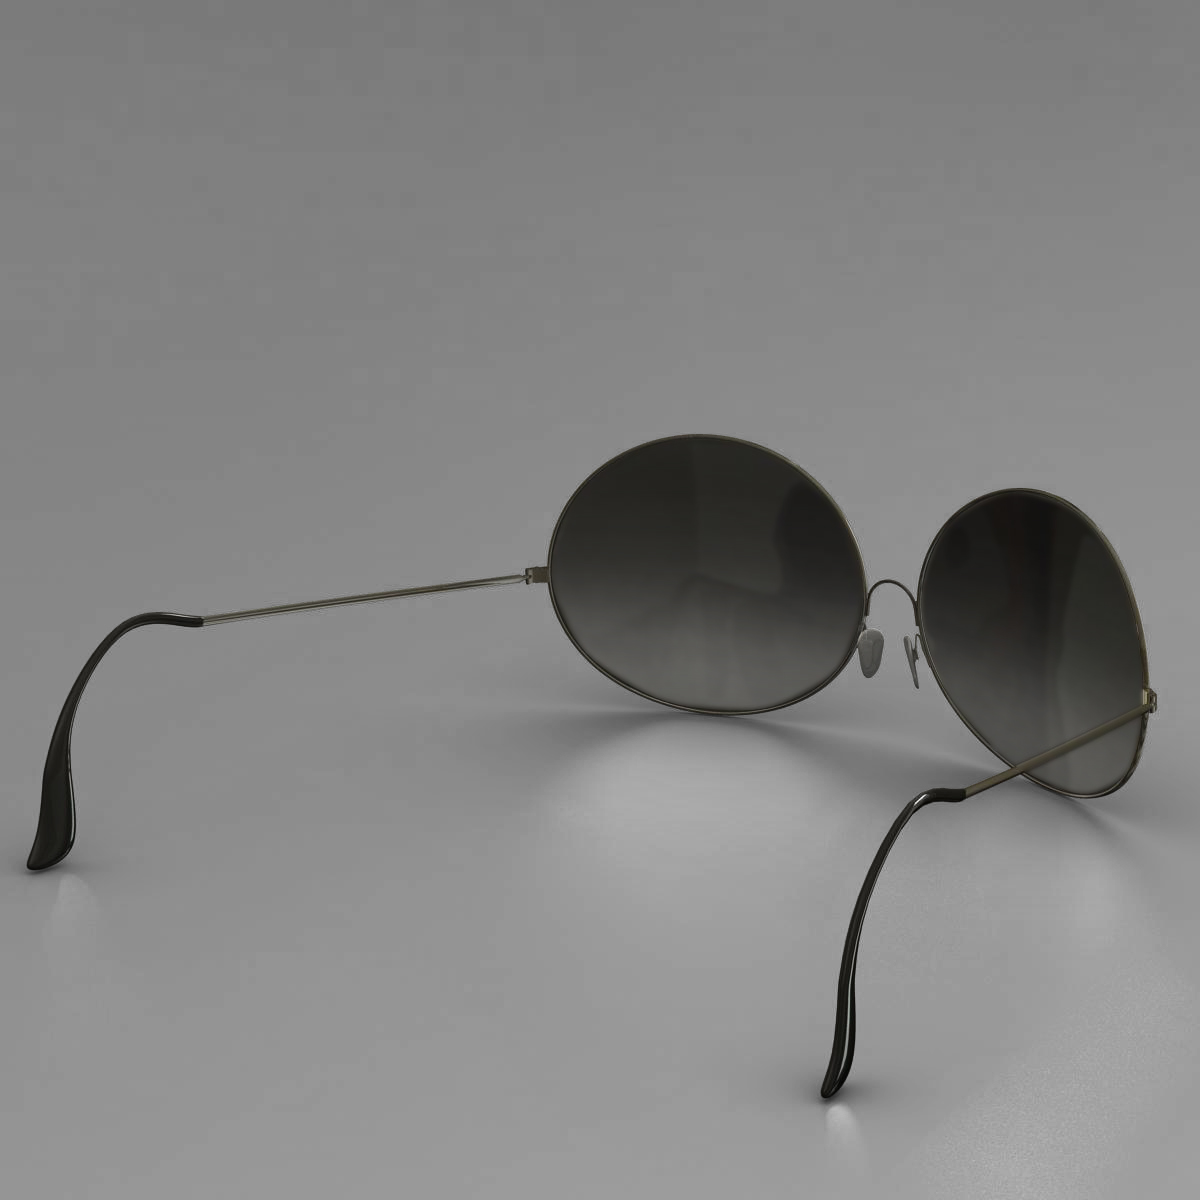 sunglasses 3d model 3ds max fbx c4d ma mb obj 160707